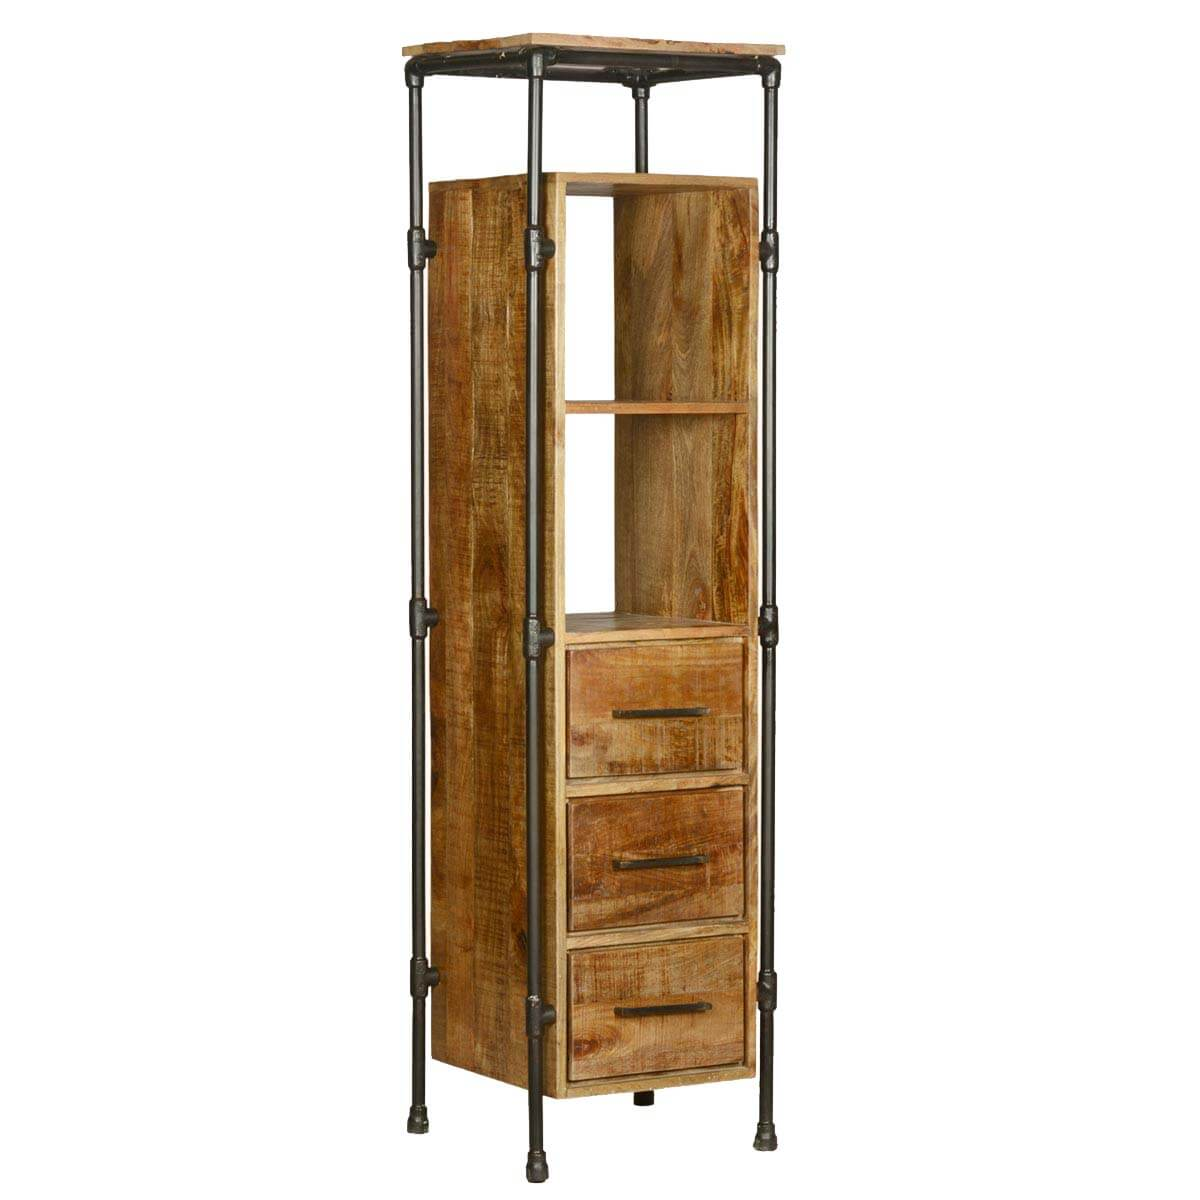 #734618 Industrial Mango Wood & Iron 3 Drawer Dresser W Open Back Shelves with 1200x1200 px of Best Open Back Bookcases 12001200 image @ avoidforclosure.info